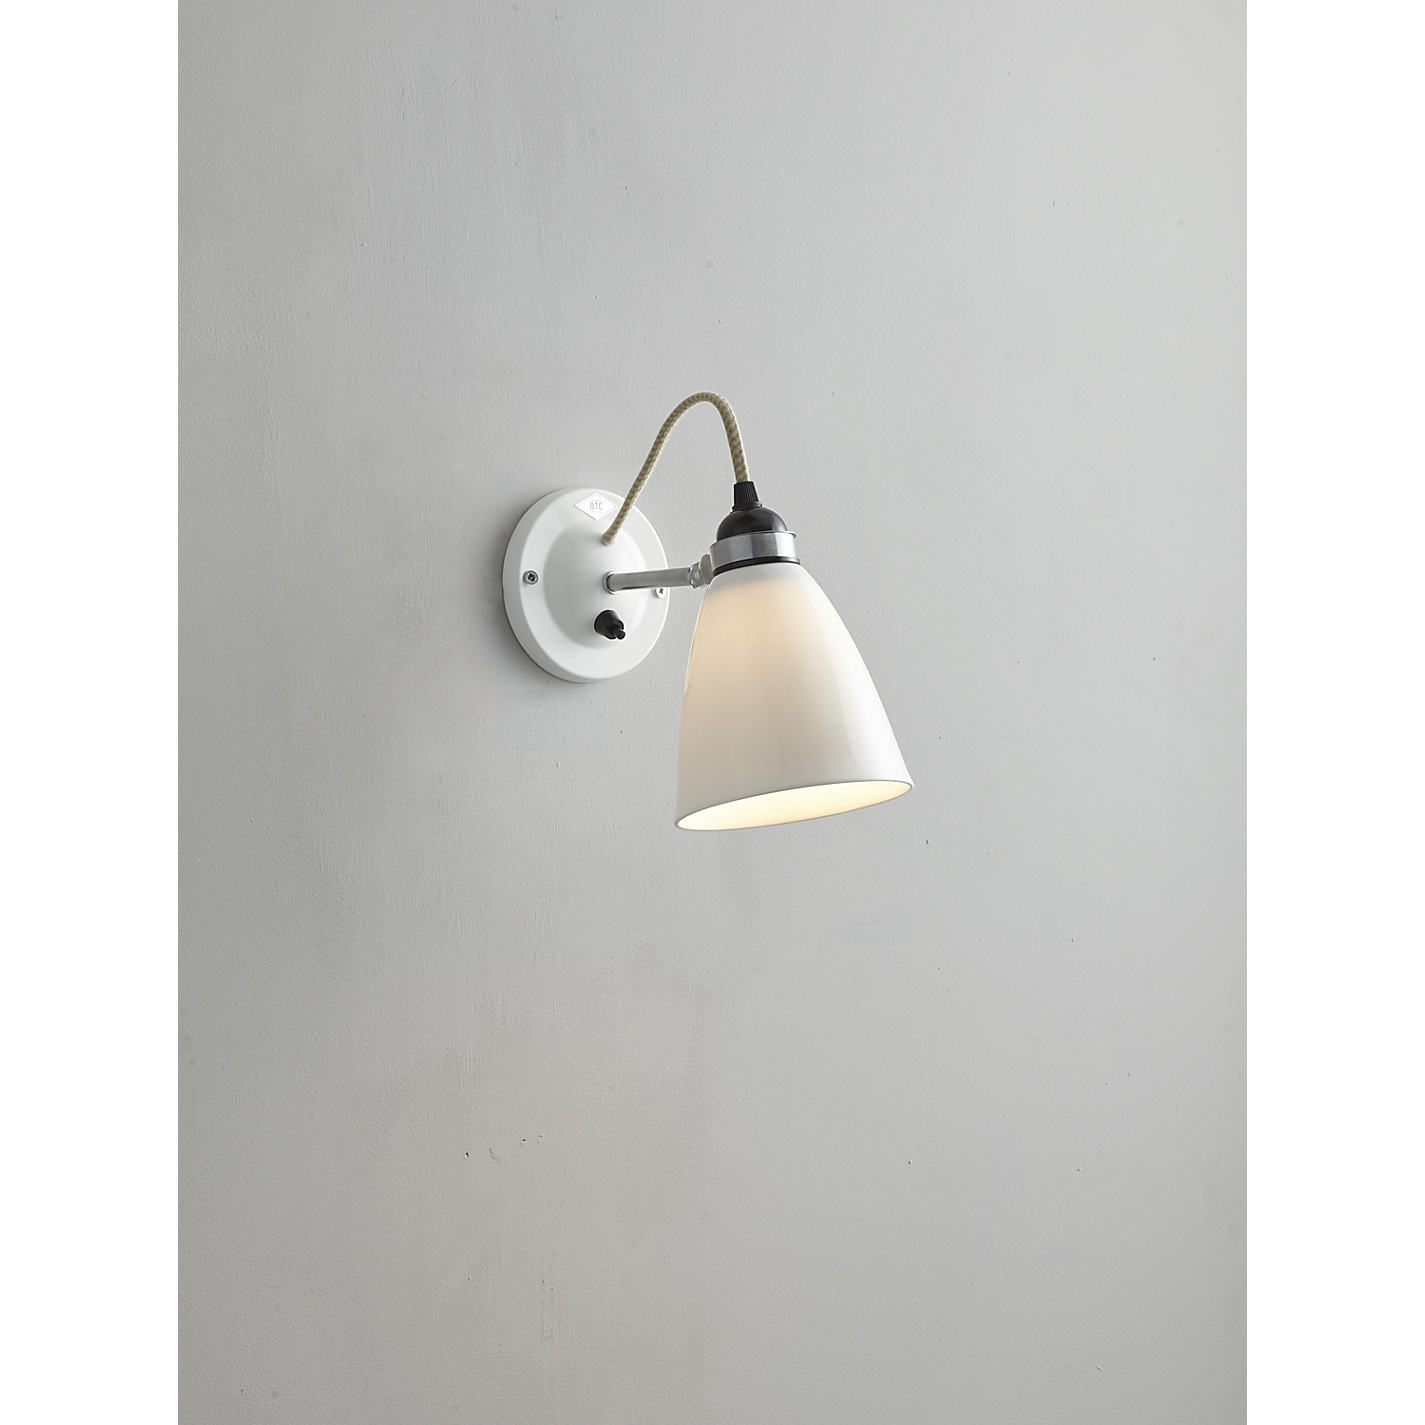 Buy original btc hector dome switched wall light medium natural buy original btc hector dome switched wall light medium natural white online at johnlewis mozeypictures Image collections